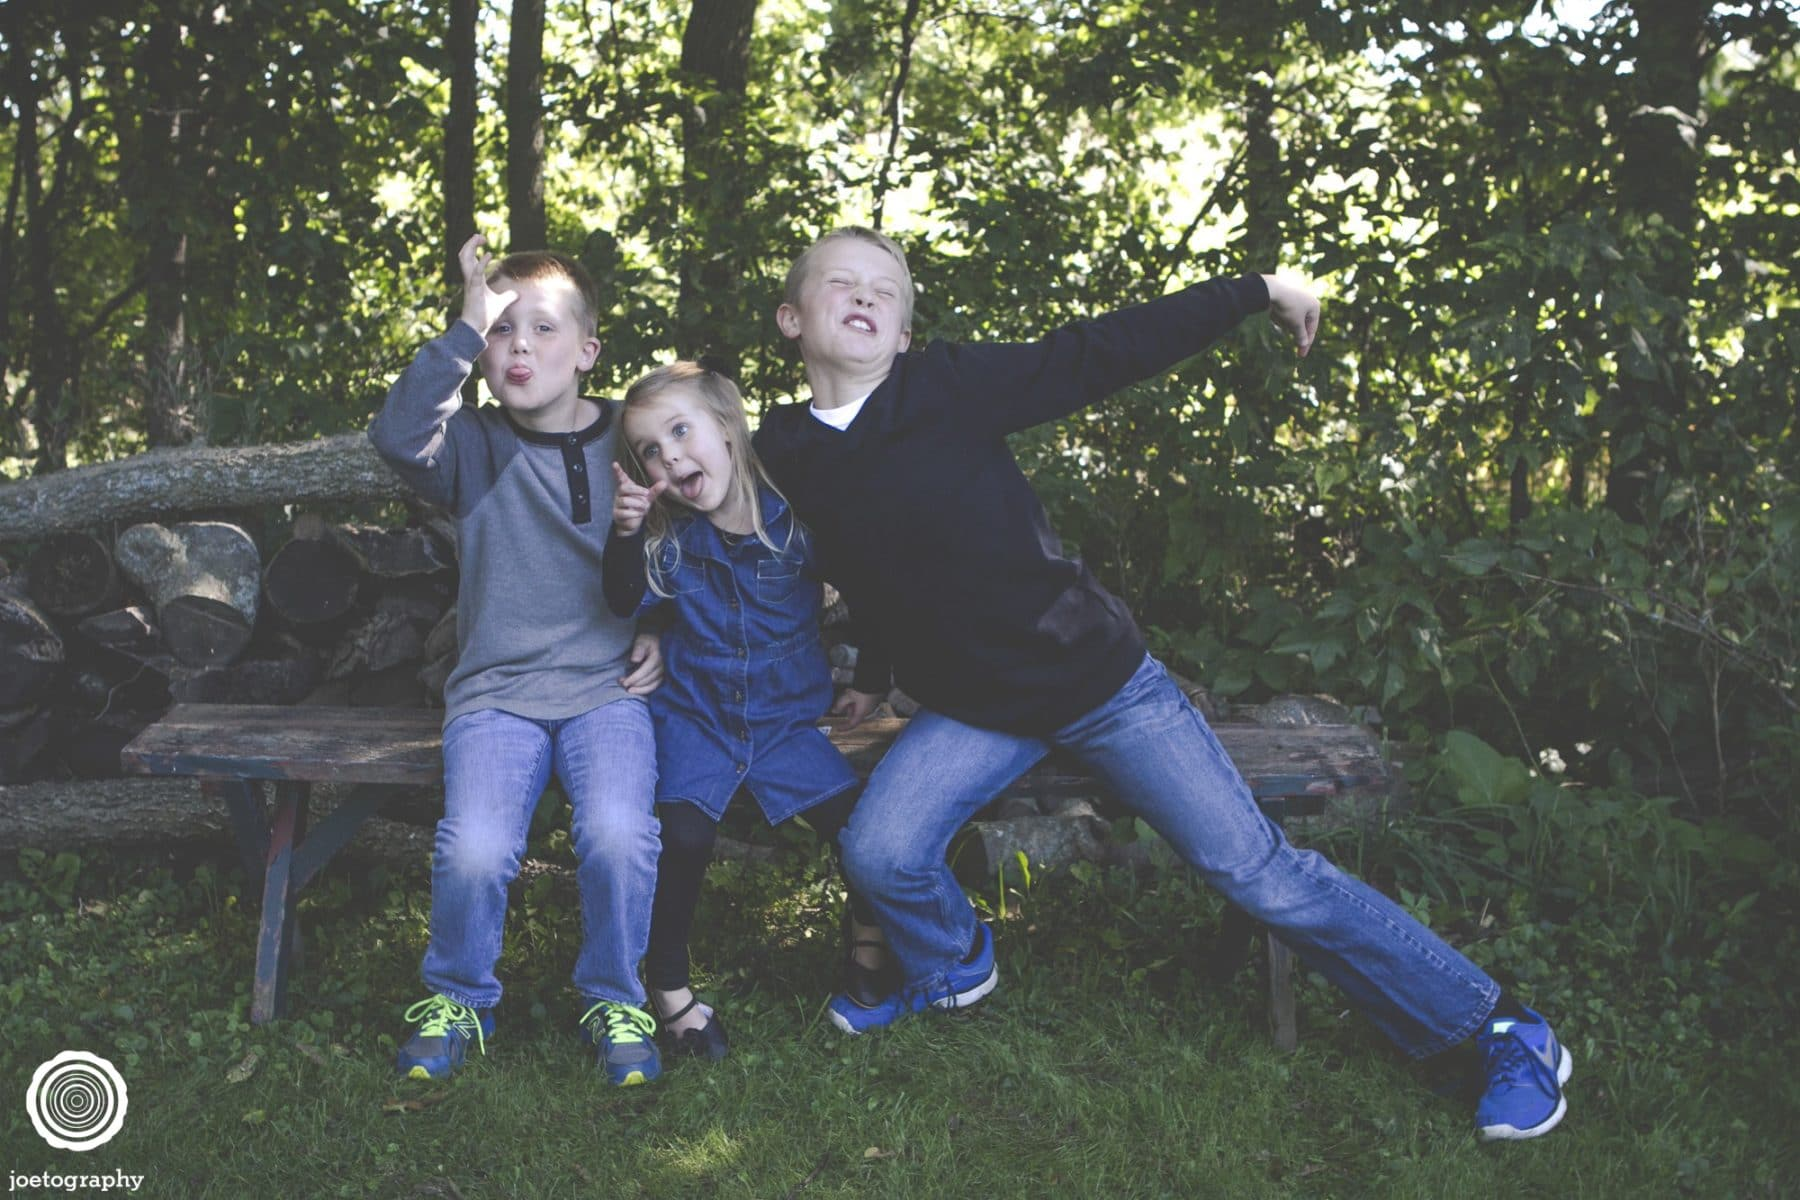 evans-family-photographs-westfield-indiana-8